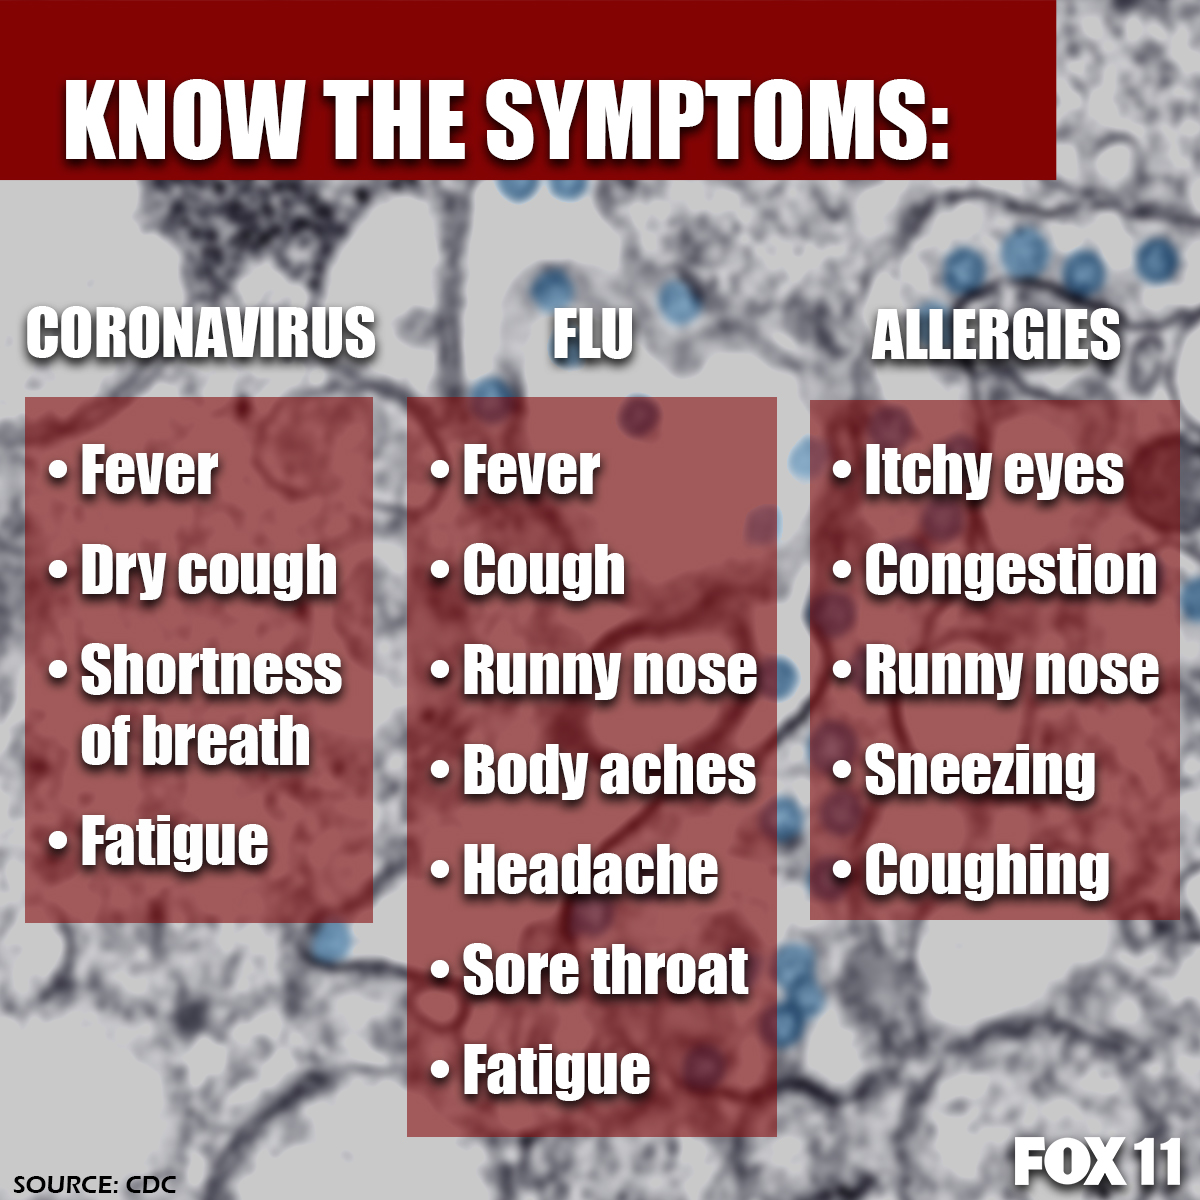 Is it the flu, a cold or the new #coronavirus? Patients and doctors alike are parsing signs of illness to figure out who needs what tests or care and how worried they should be. We're breaking it down for you: https://t.co/8IMoYKO3fy https://t.co/4kzAjeyCcH